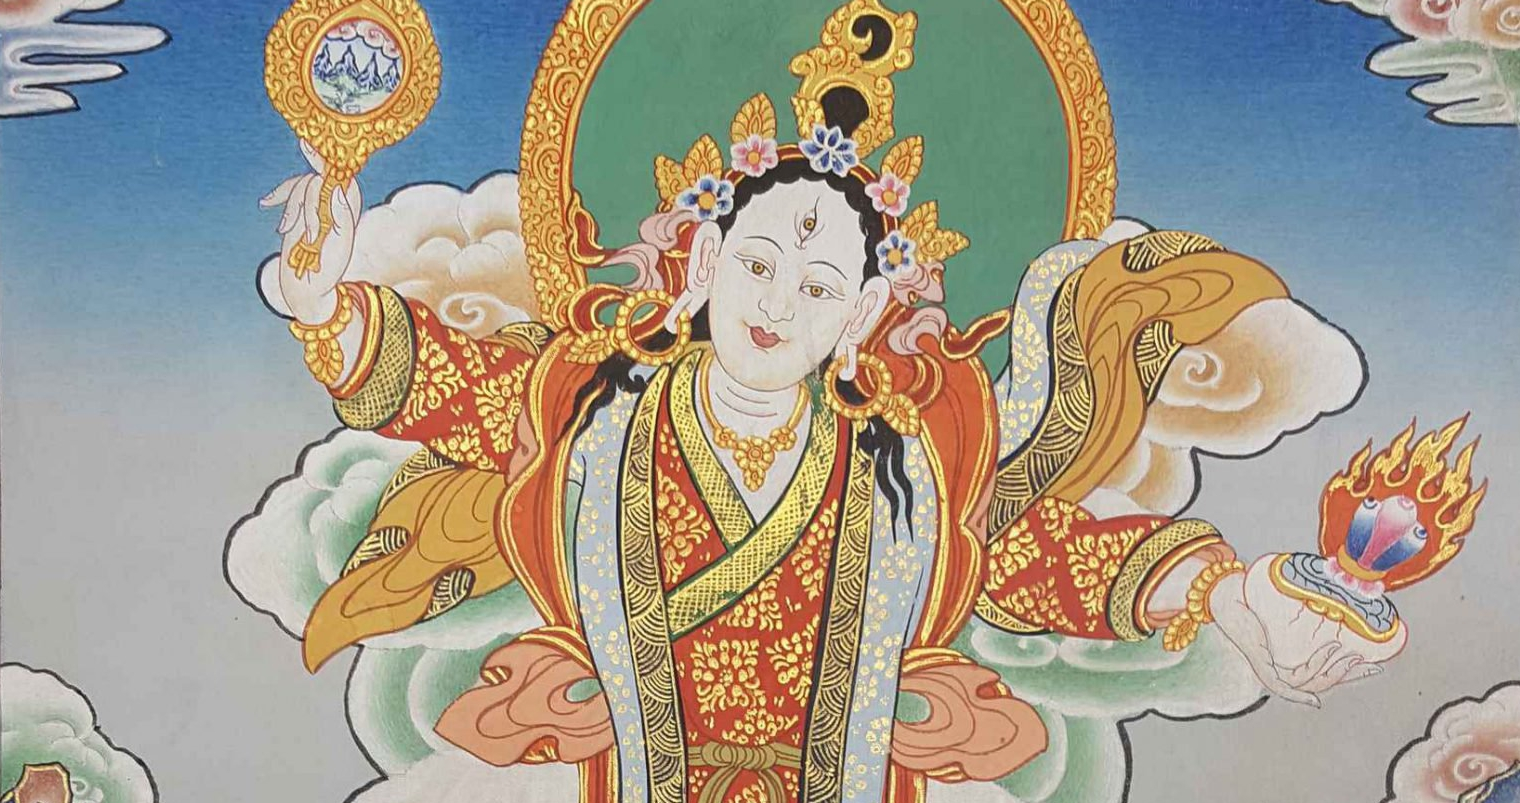 Mandarava Thangka Painting